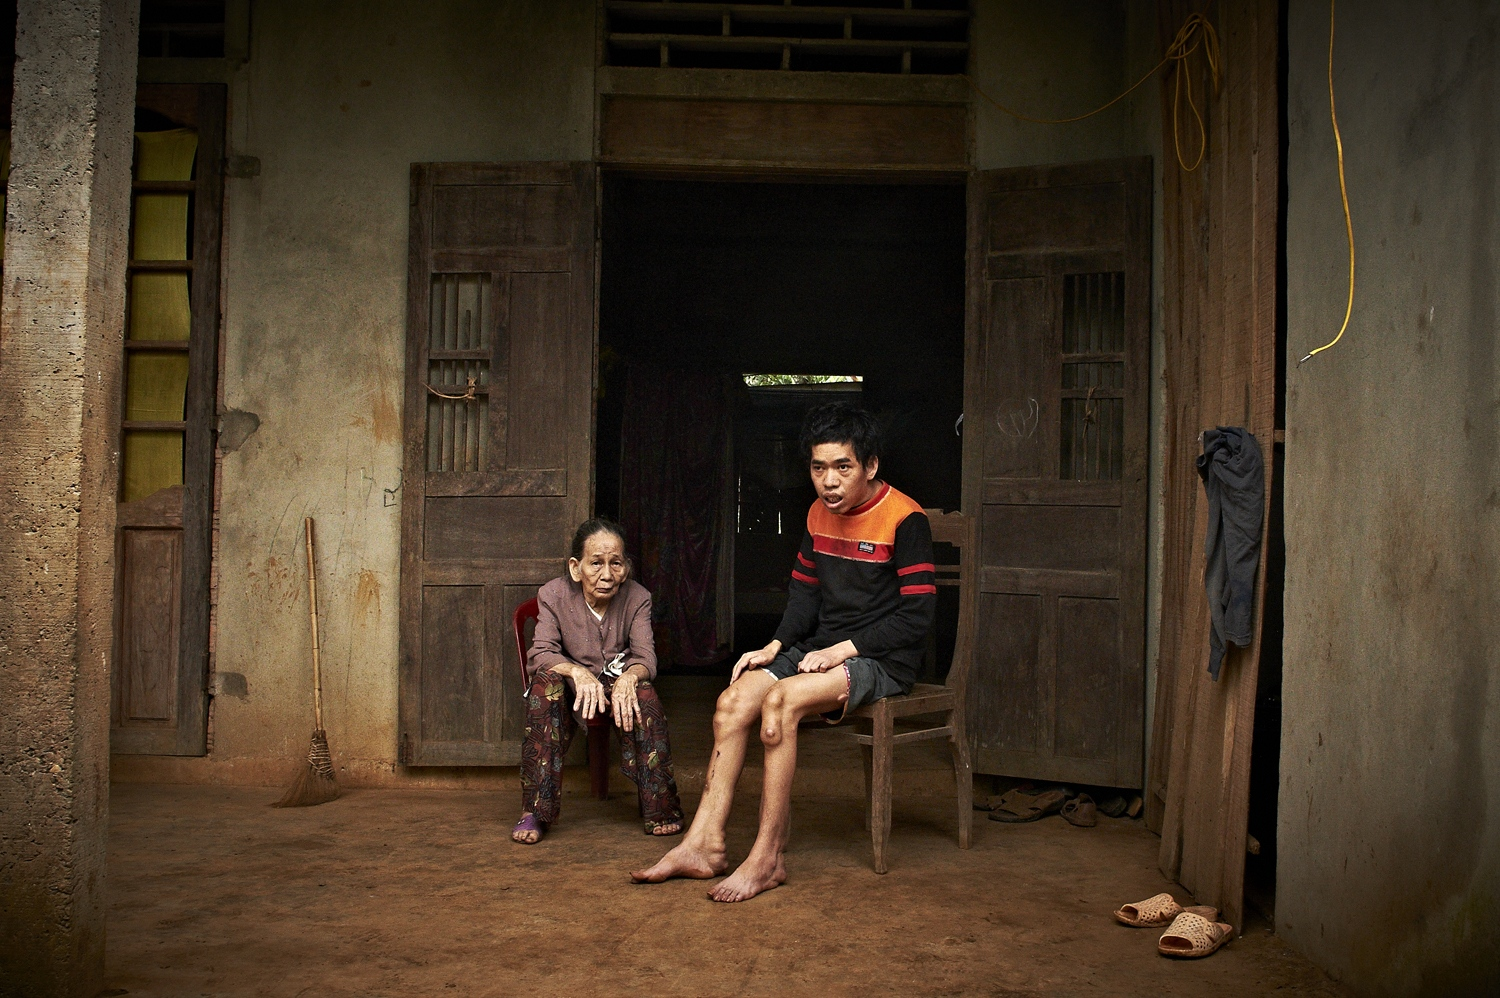 Deaf and mentally challenged, Hoang Van Trung (Male, born in 1978), lost his father to Agent Orange, a civilian who was directly hit by the chemicals during the War. Hoang Van Trung is suffering from severe skin cancer on his lower part of body and is unable to walk. The only person he can depend on is his frail and old grandmother. (Dec. 8, 2012)